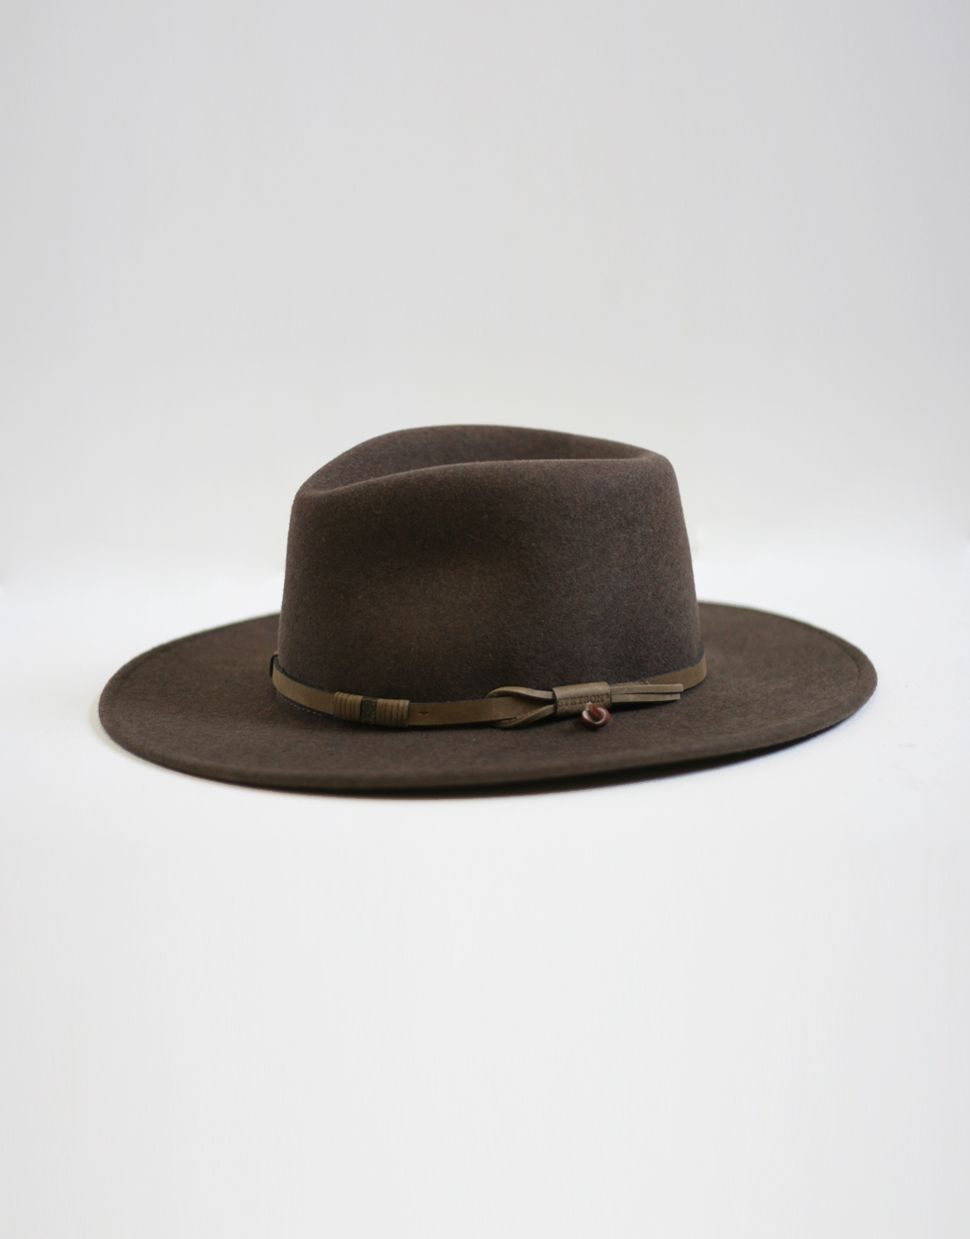 Vintage Stetson Mountain Hat — Everything Golden  4281d848c64